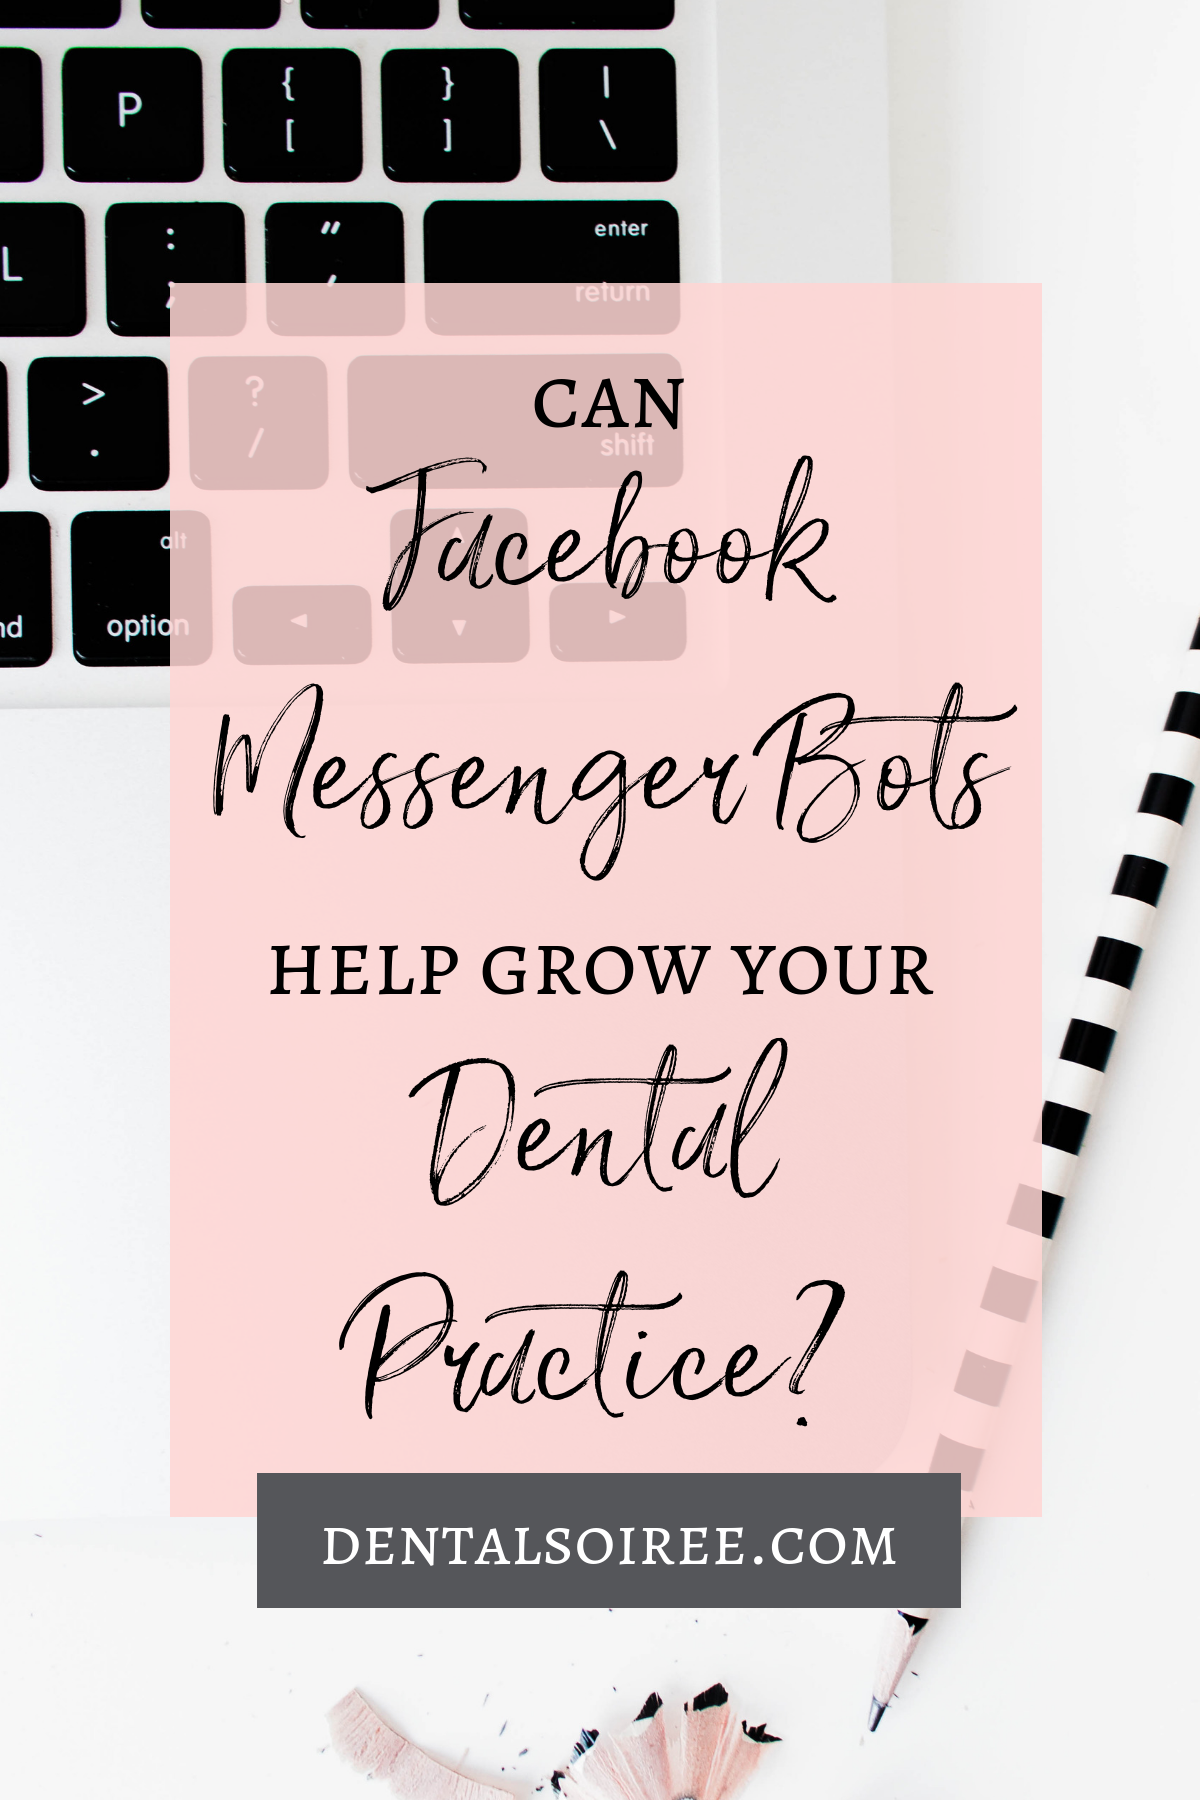 Can Facebook Messenger Bots Help Grow Your Dental Practice?